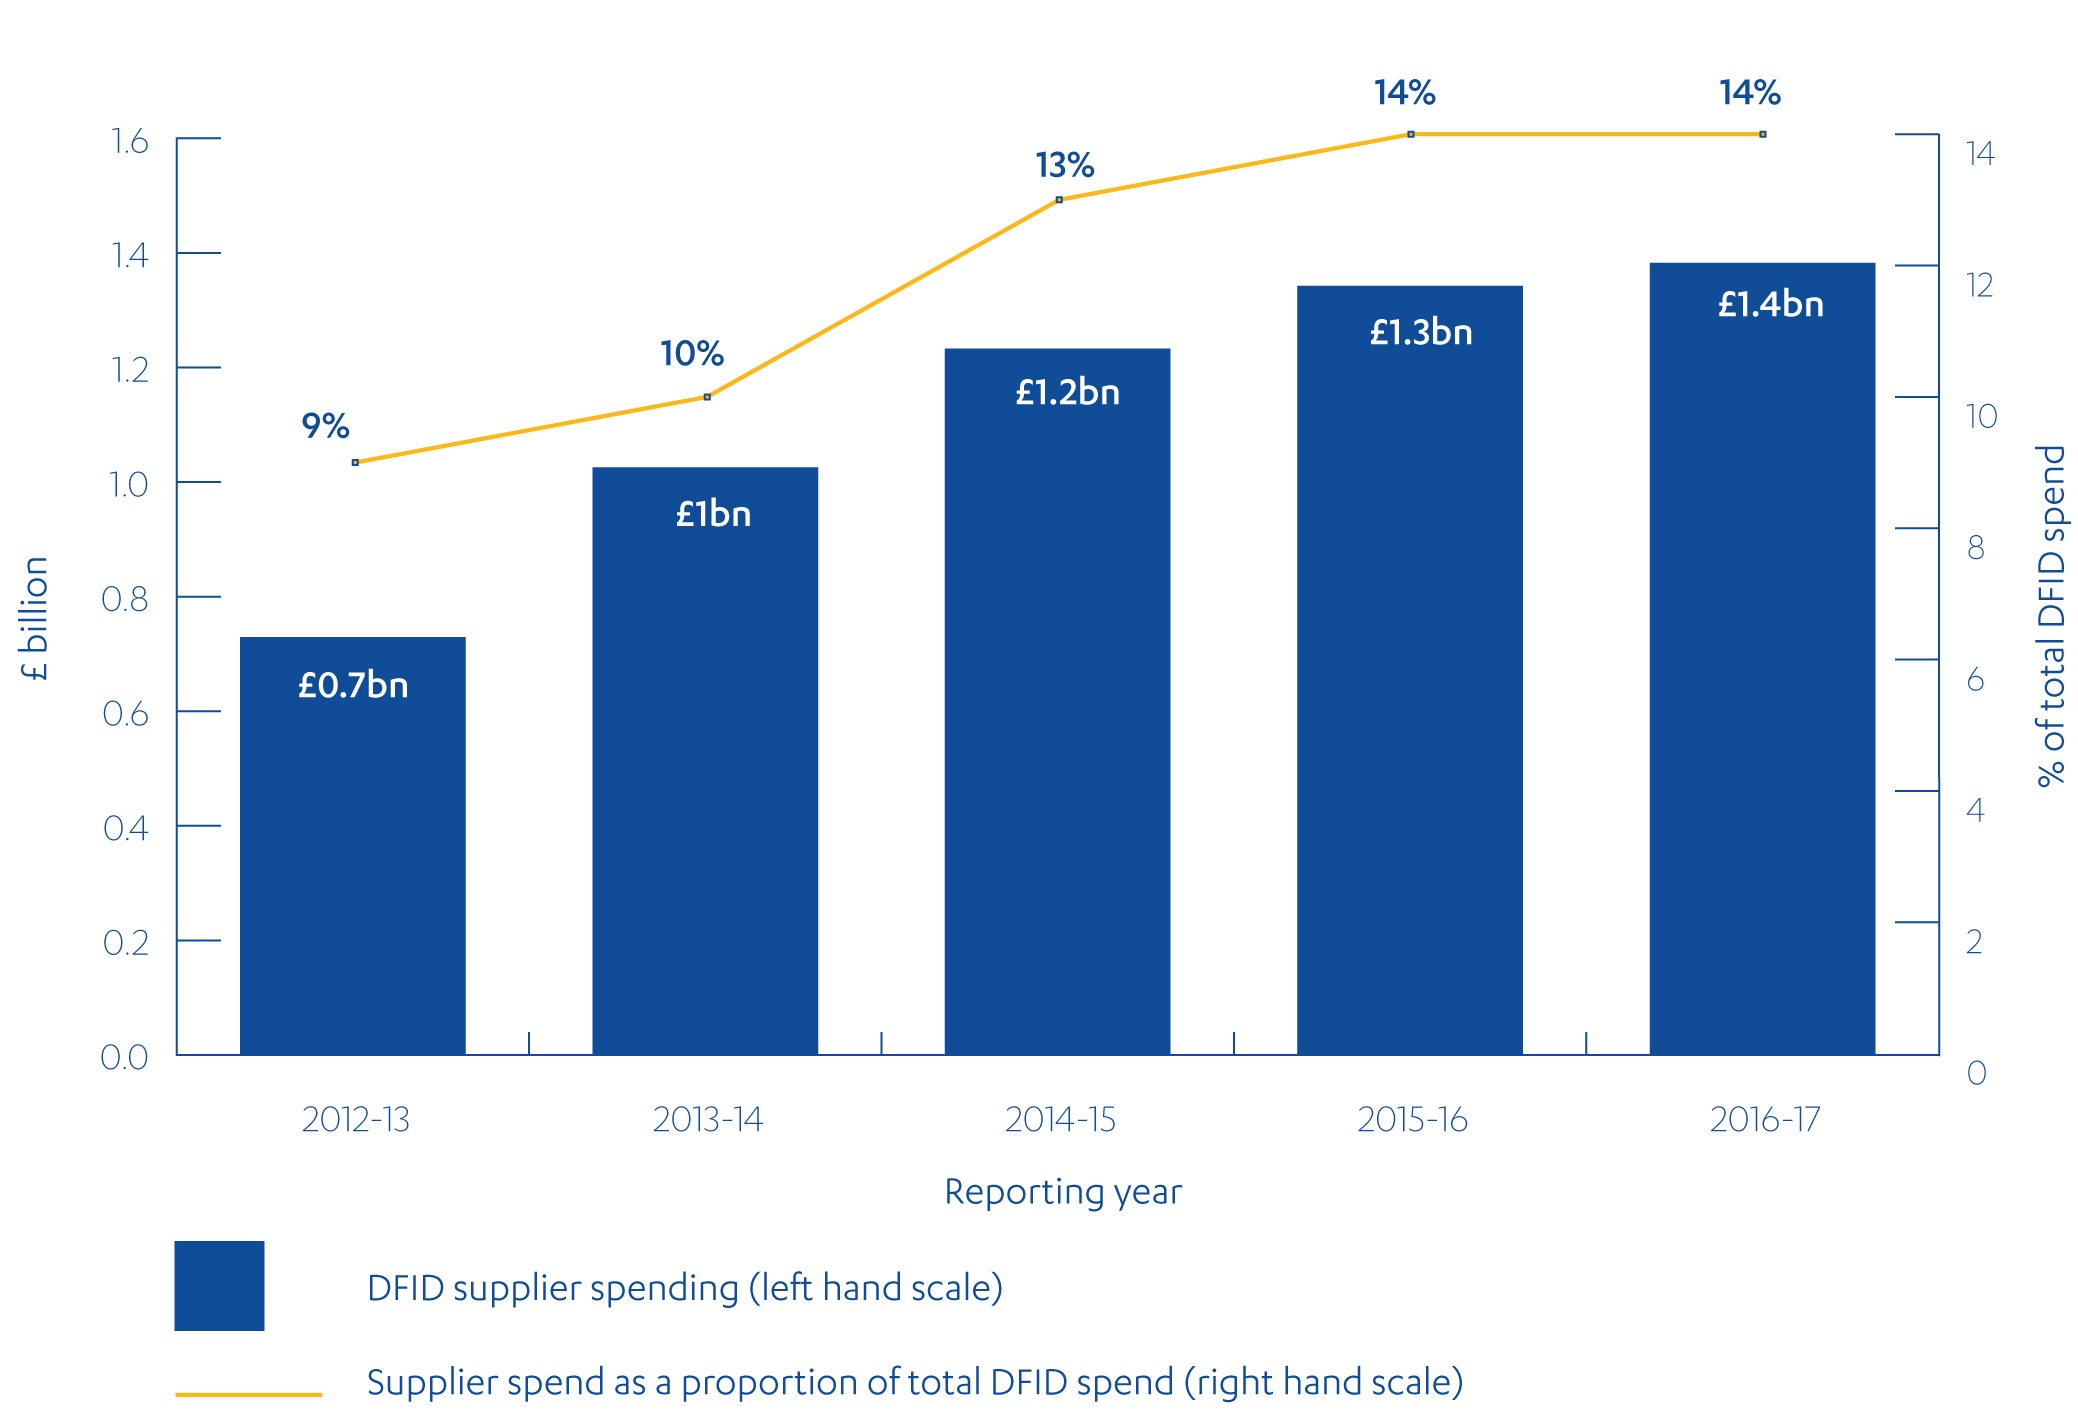 Bar chart showing the increase in DFID supplier spending from £0.7bn in 2012-13 to £1.4bn in 2016-17, the equivalent of from 9% of DFID's total spend to 14%.